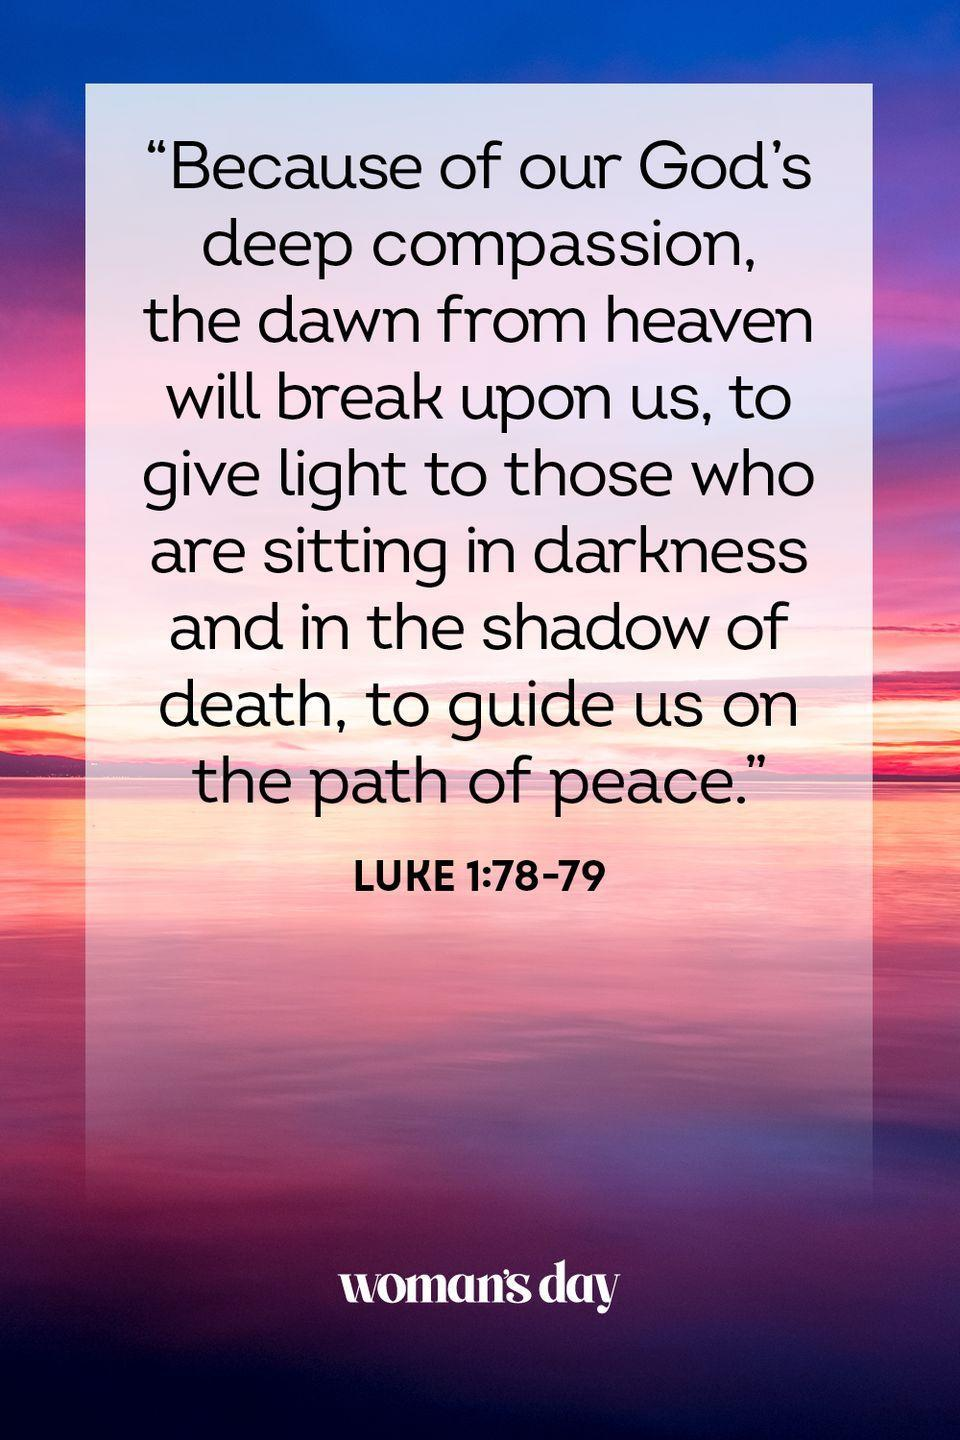 """<p>""""Because of our God's deep compassion, the dawn from heaven will break upon us, to give light to those who are sitting in darkness and in the shadow of death, to guide us on the path of peace."""" — Luke 1:78-79</p><p><strong>The Good News: </strong>Even in the dark times, even when death draws near, the mercy of God is always available to comfort you and grant you peace.</p>"""